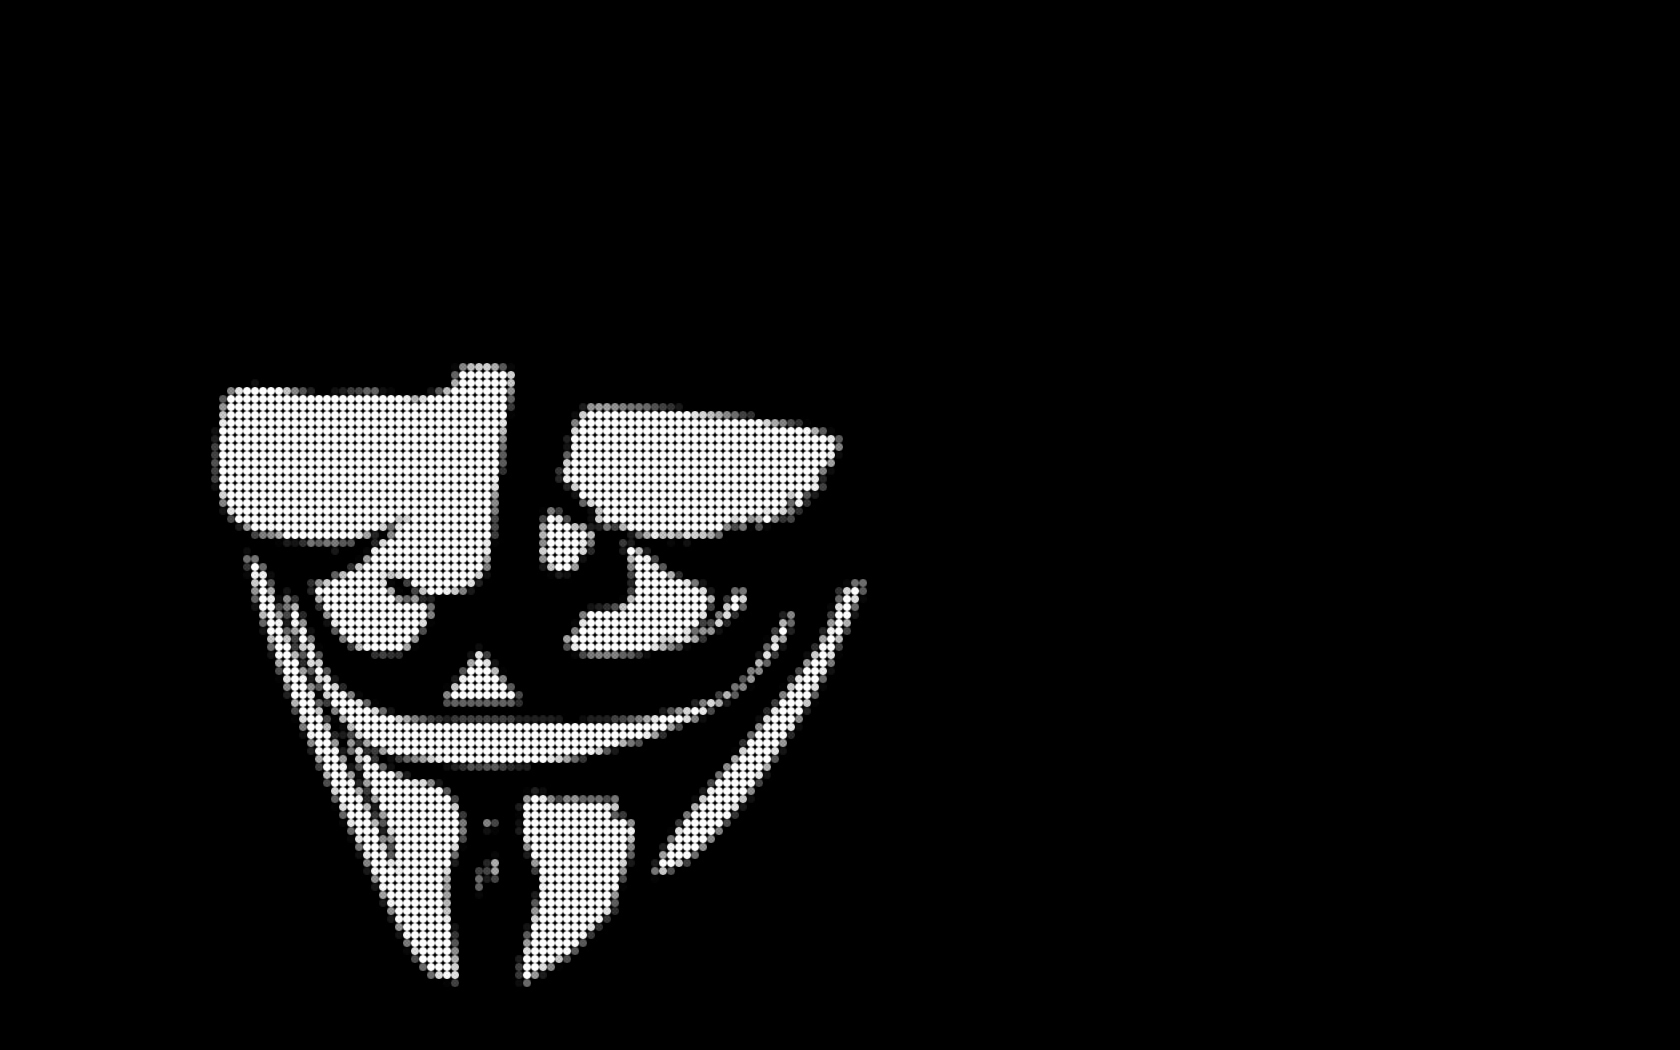 11 2015 By admin Comments Off on V for Vendetta HD Wallpapers 1680x1050